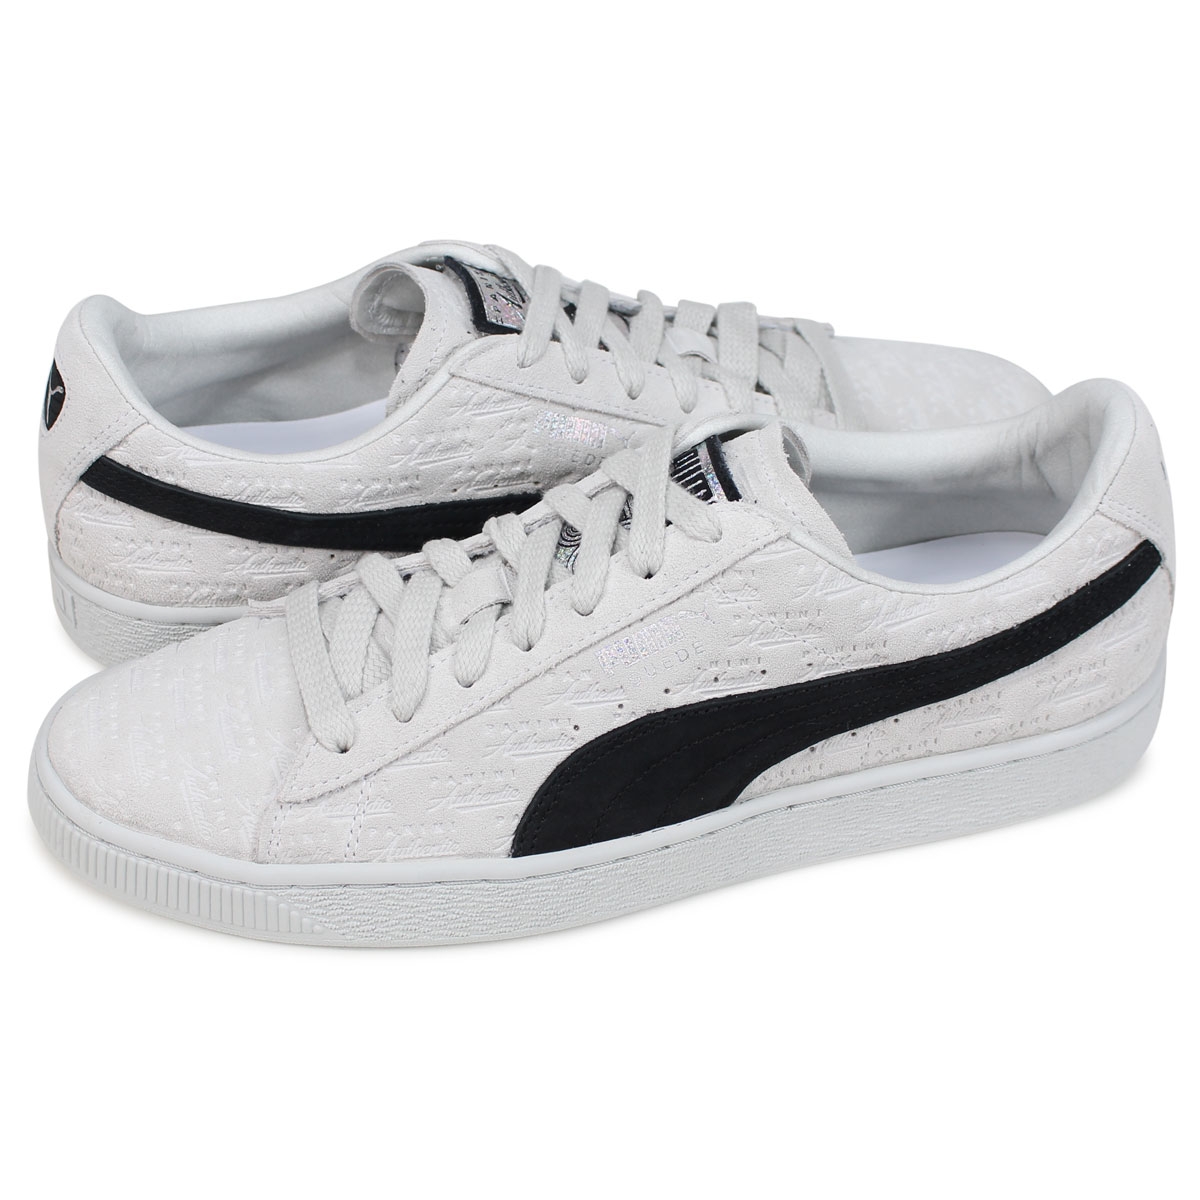 PUMA SUEDE CLASSIC Puma suede cloth classical music sneakers men gap Dis  Panini collaboration PANINI white 366,323-01 [191]